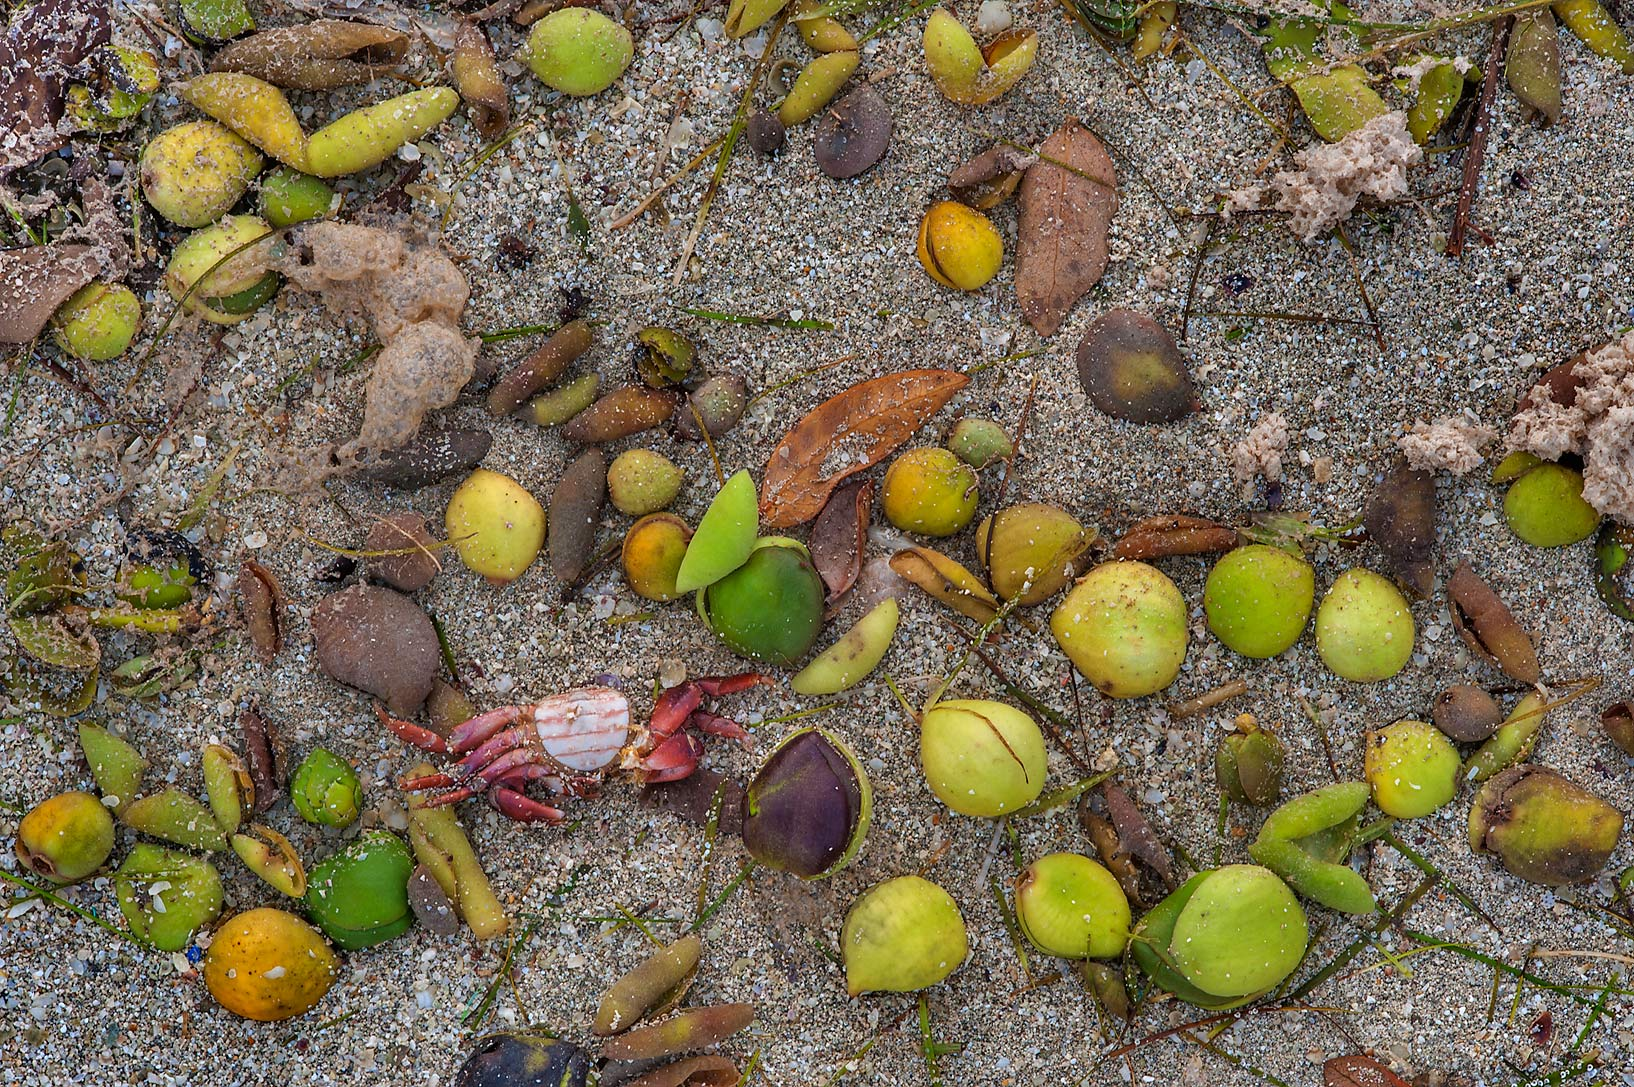 Masses of leathery fruits of mangrove washed out...Jazirat Bin Ghanim). Al Khor, Qatar